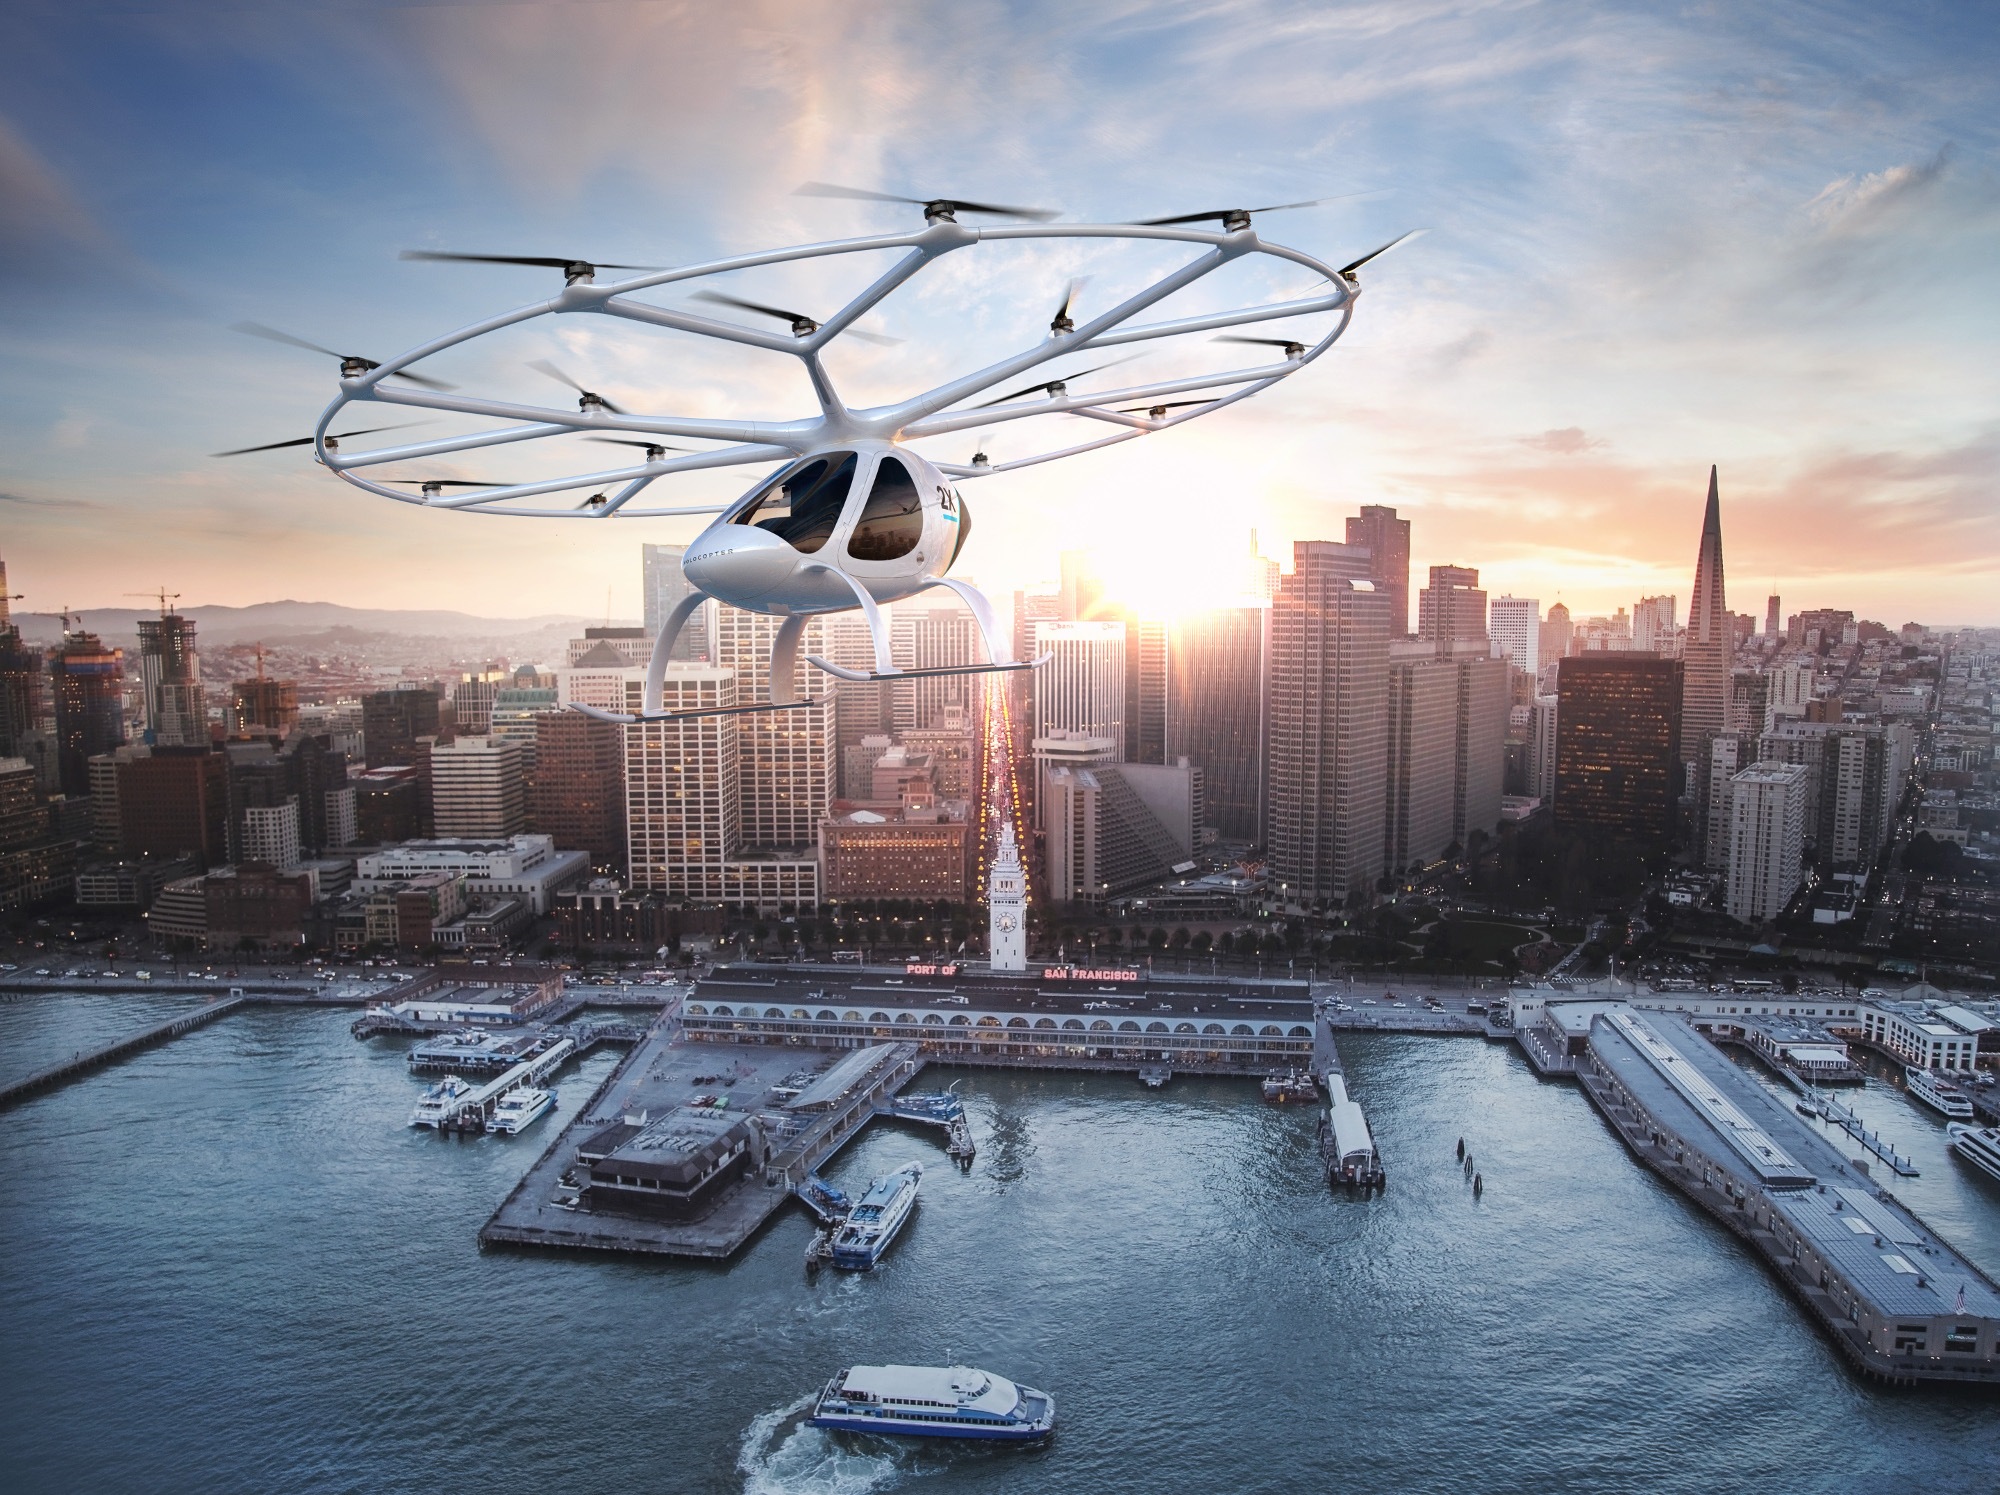 The world's first flying passenger drone